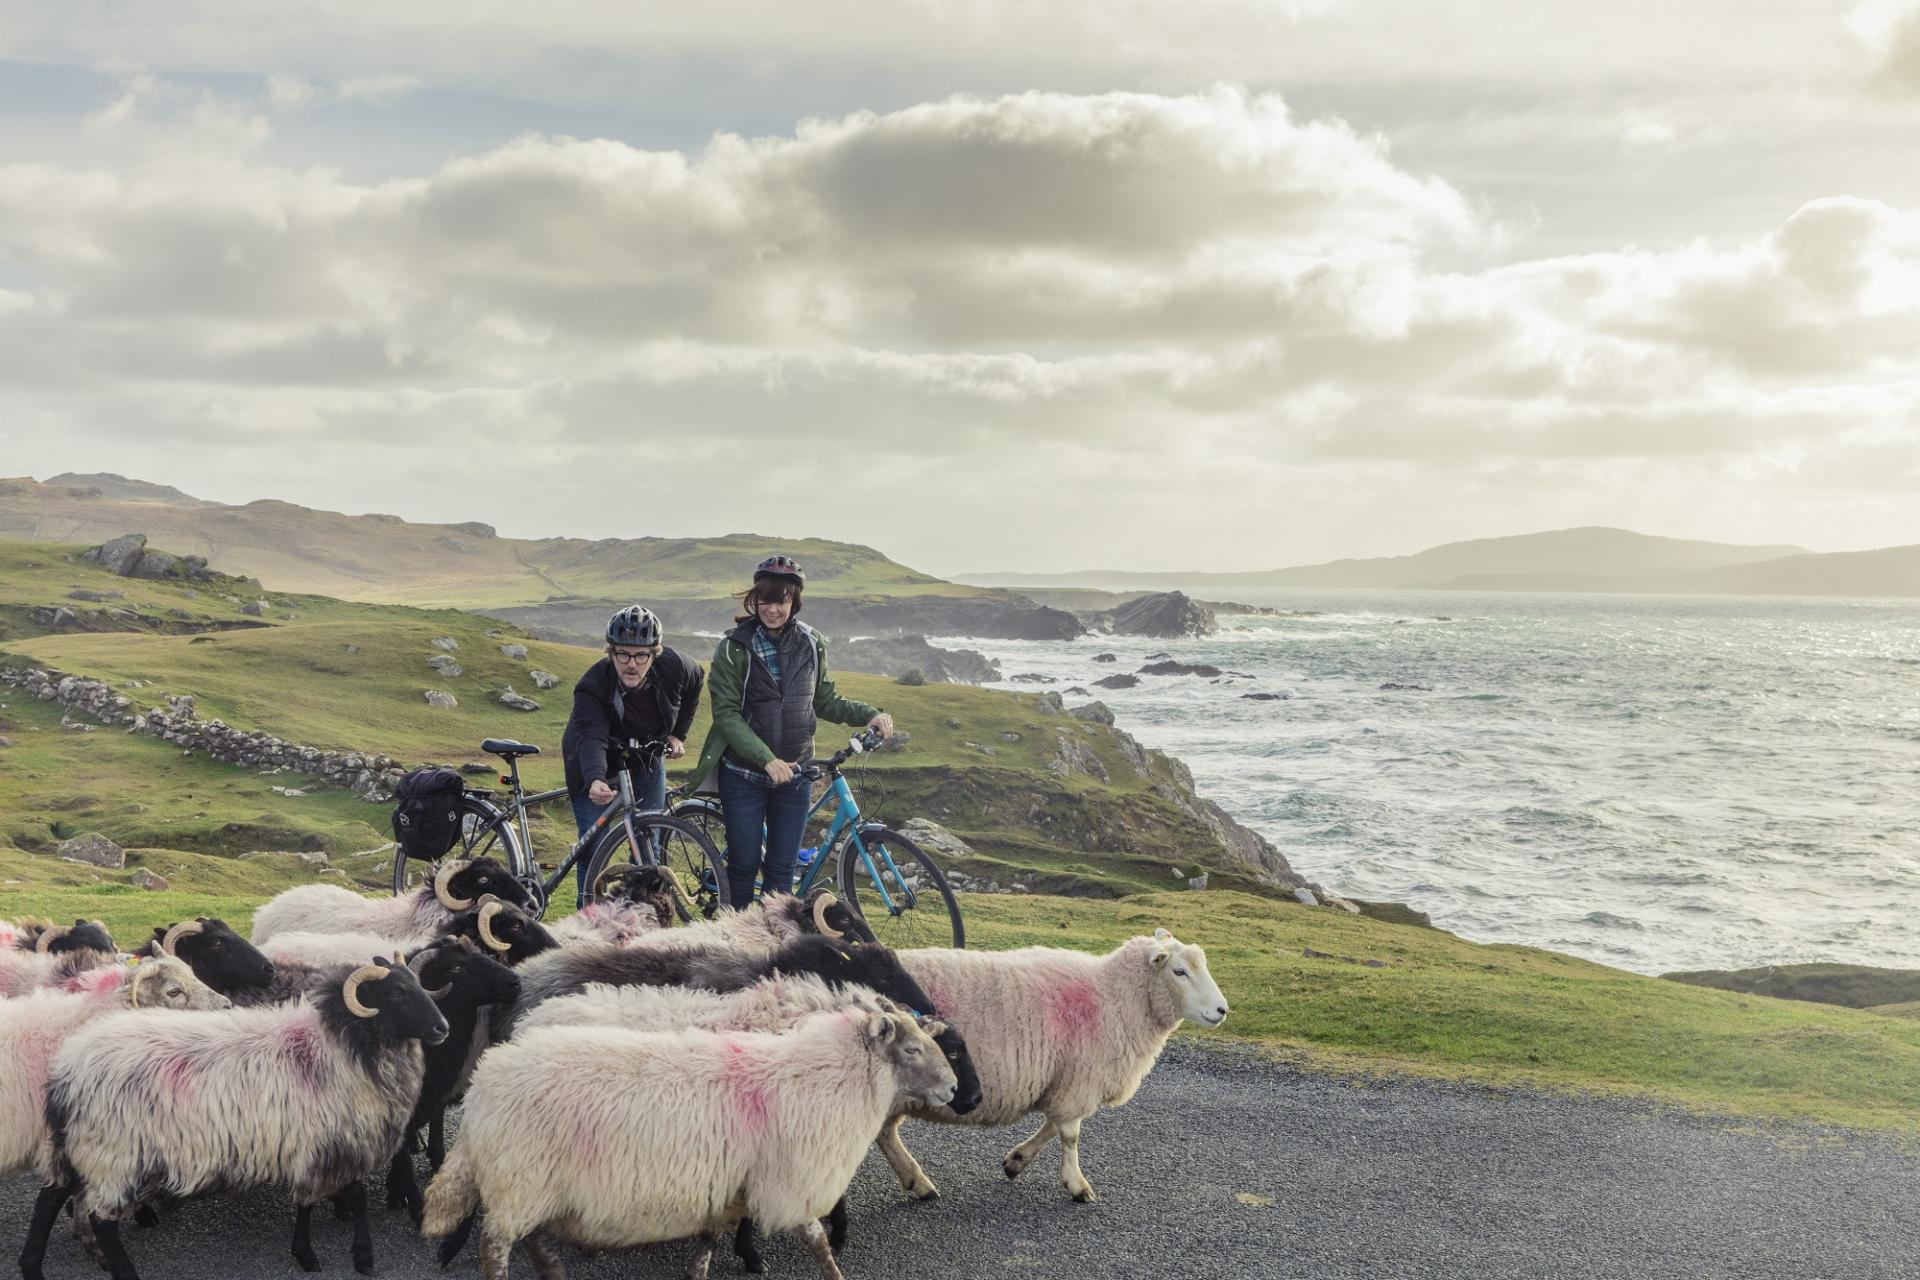 Self-Guided Bike Tour On The Wild Atlantic Way of Ireland